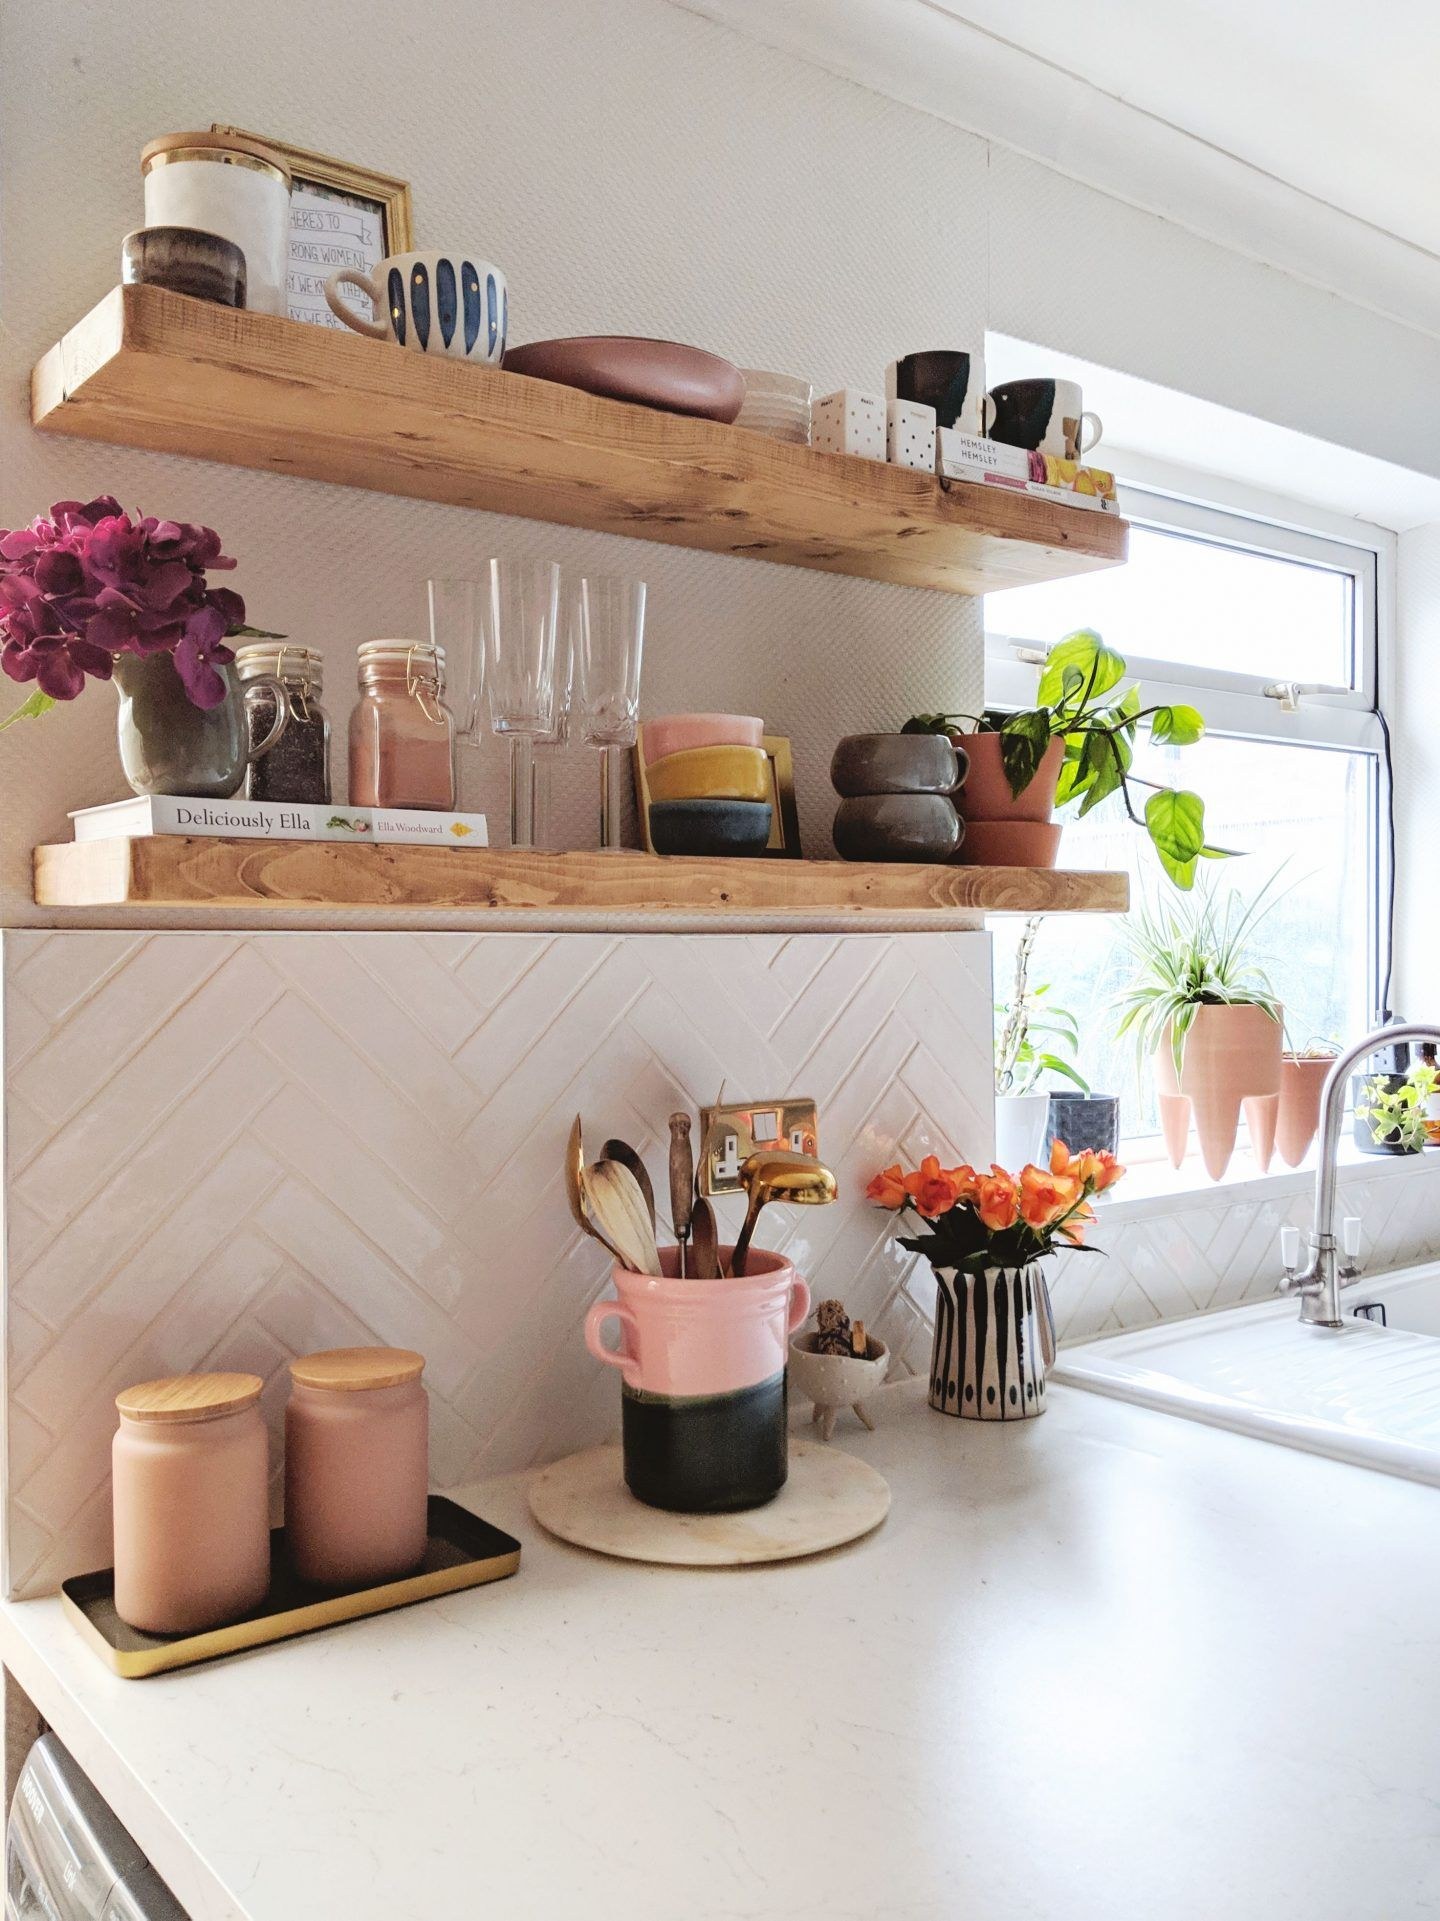 Styling Kitchen Shelves How I Ve Styled My Open Rustic Kitchen Shelving On White Herringbone Tiles Kitchen Shelf Decor Home Decor Kitchen Shelves